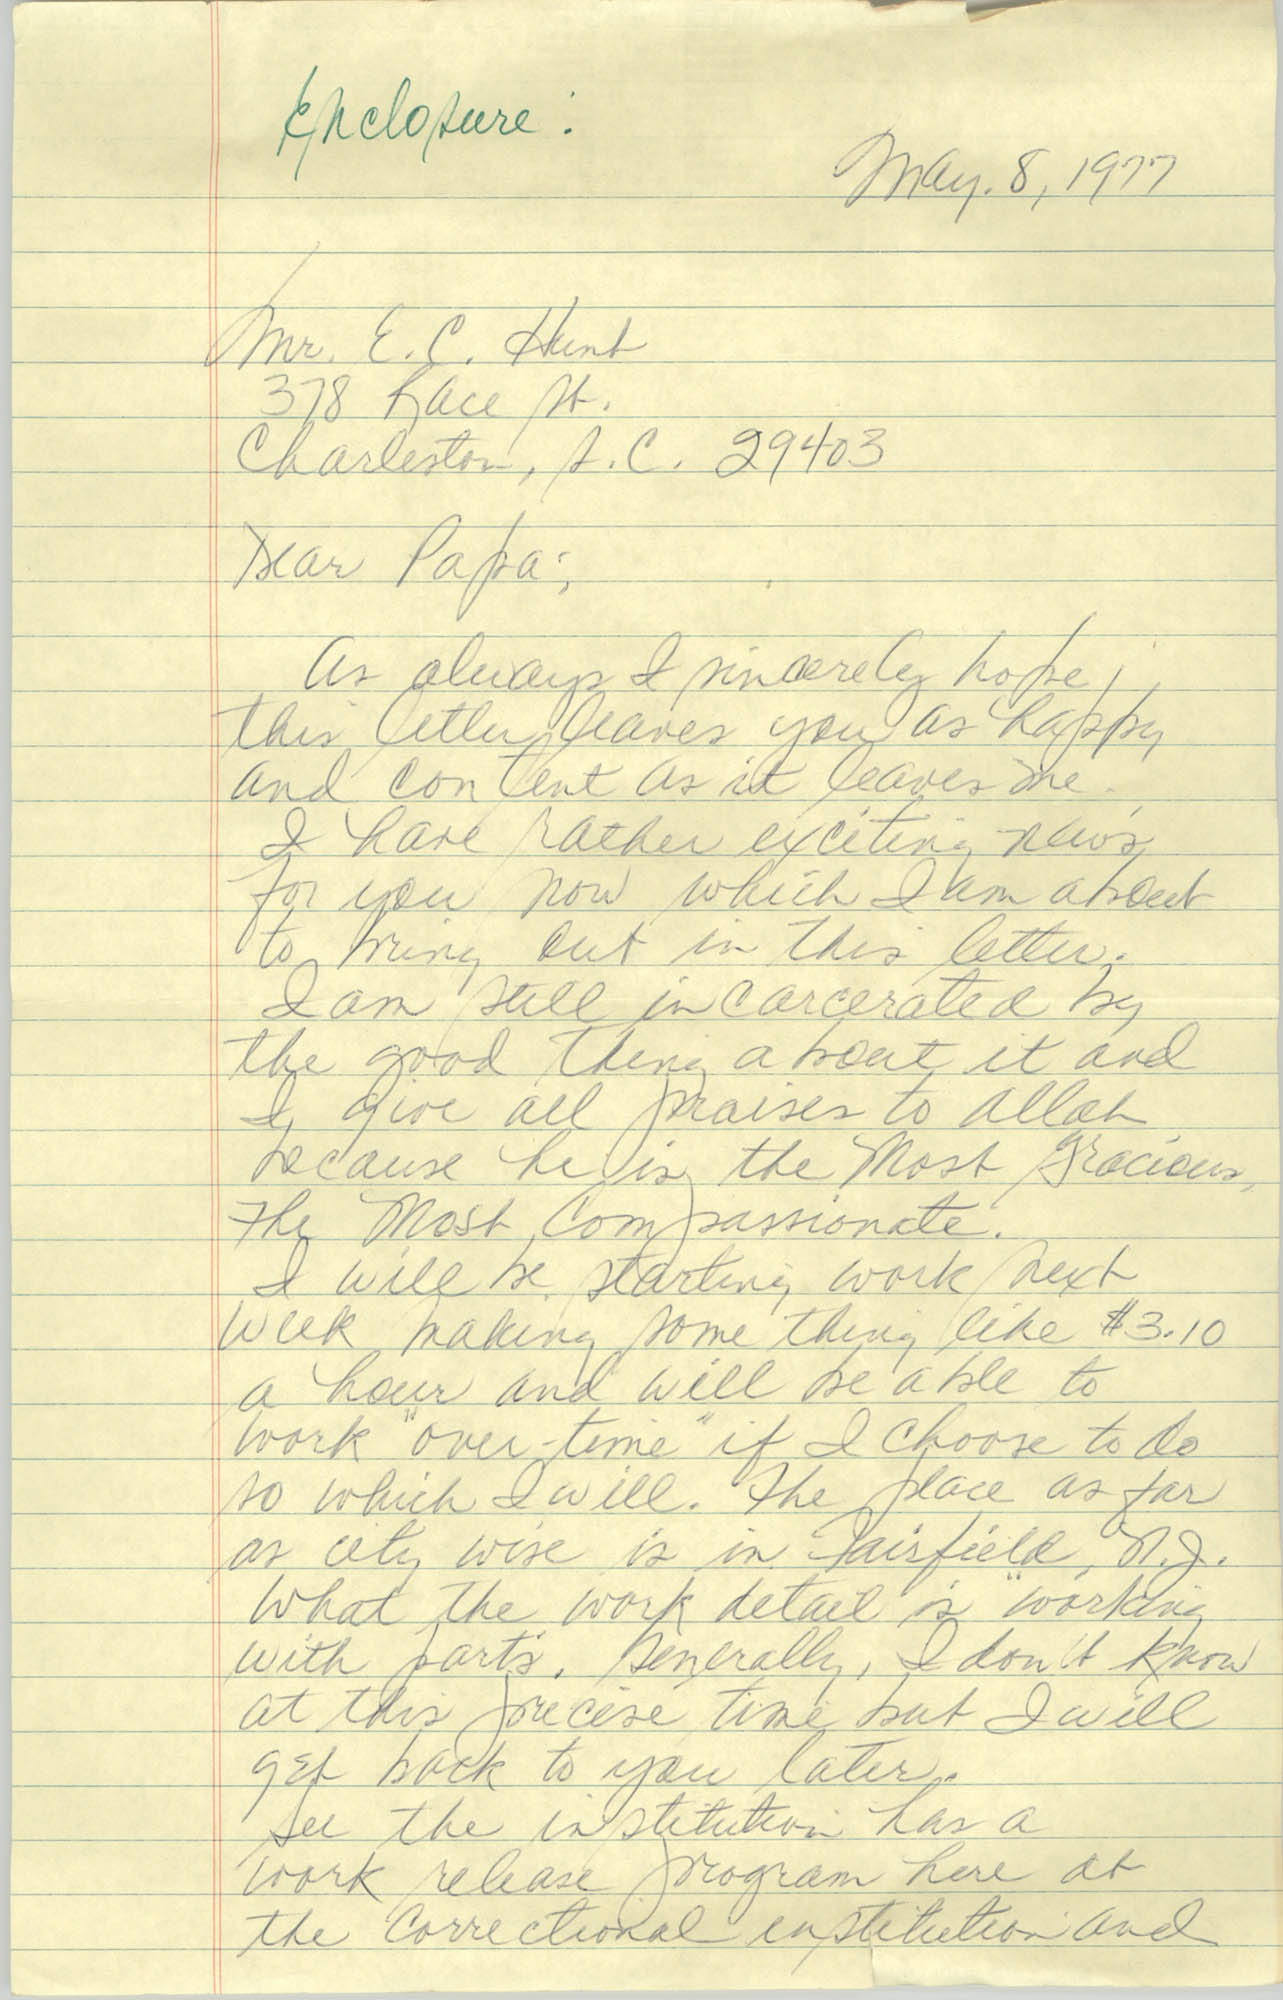 Letter Steven P. Williams to Eugene C. Hunt, May 8, 1977